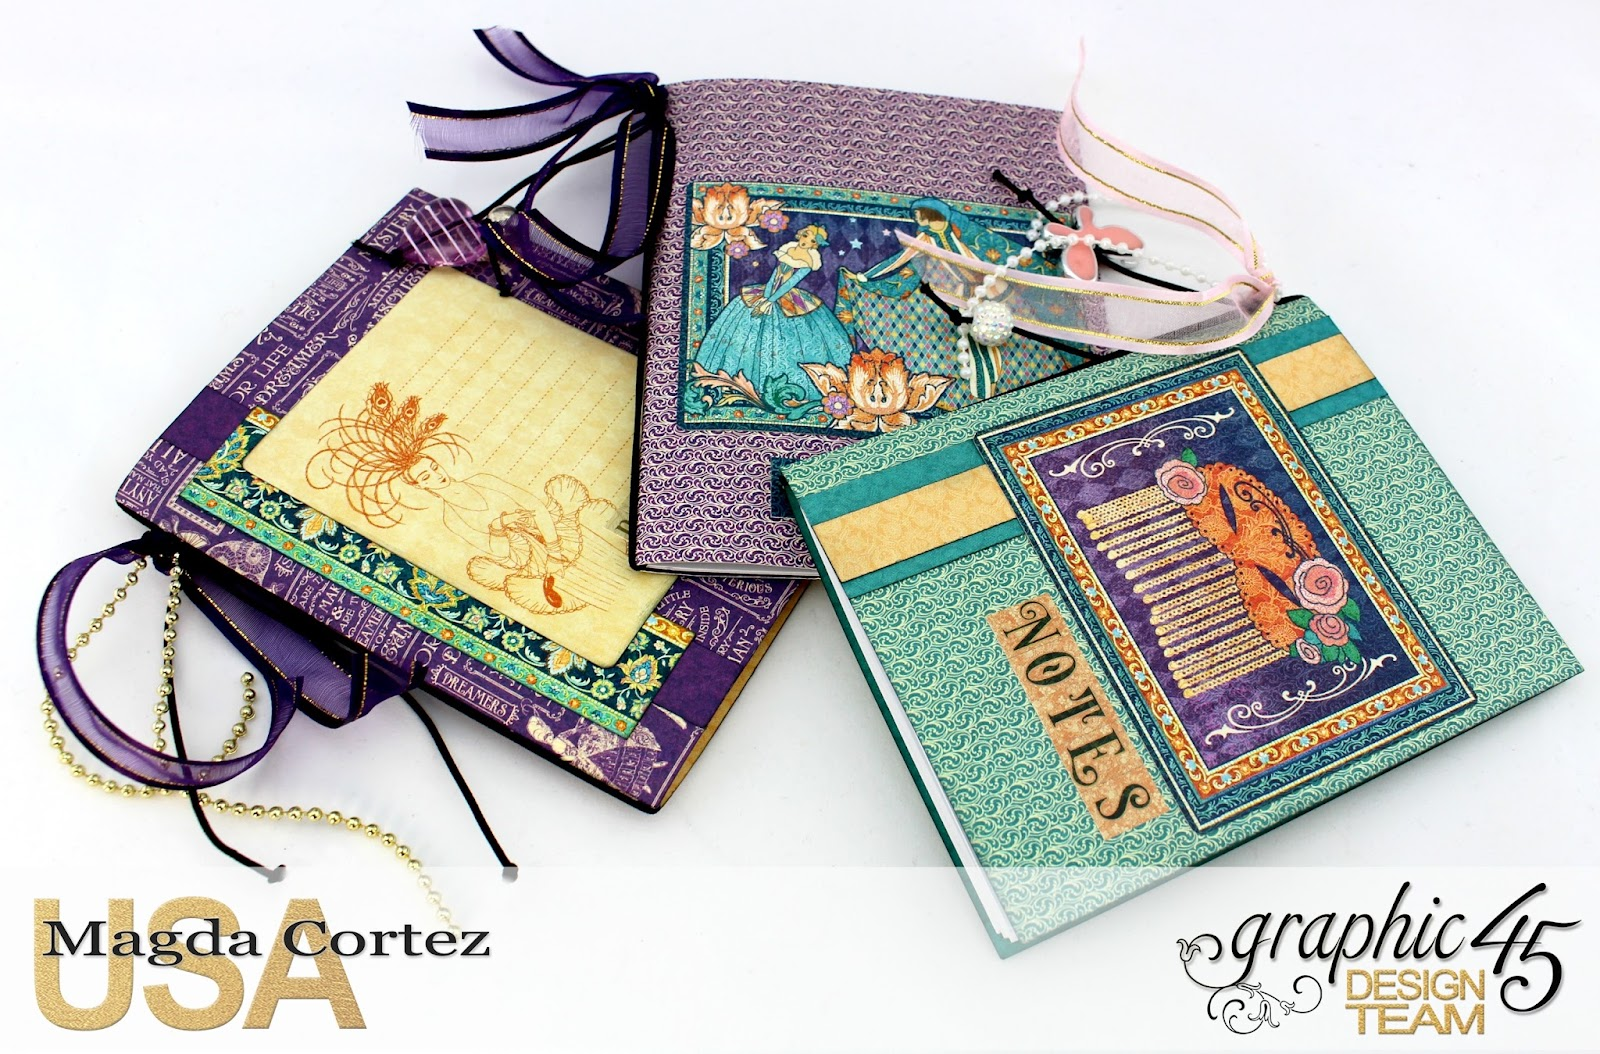 60 Second Tutorial Mini Notebooks, Midnight Masquerade, By Magda Cortez, Product by Graphic 45, Photo 07 of 07, with Tutorial.jpg